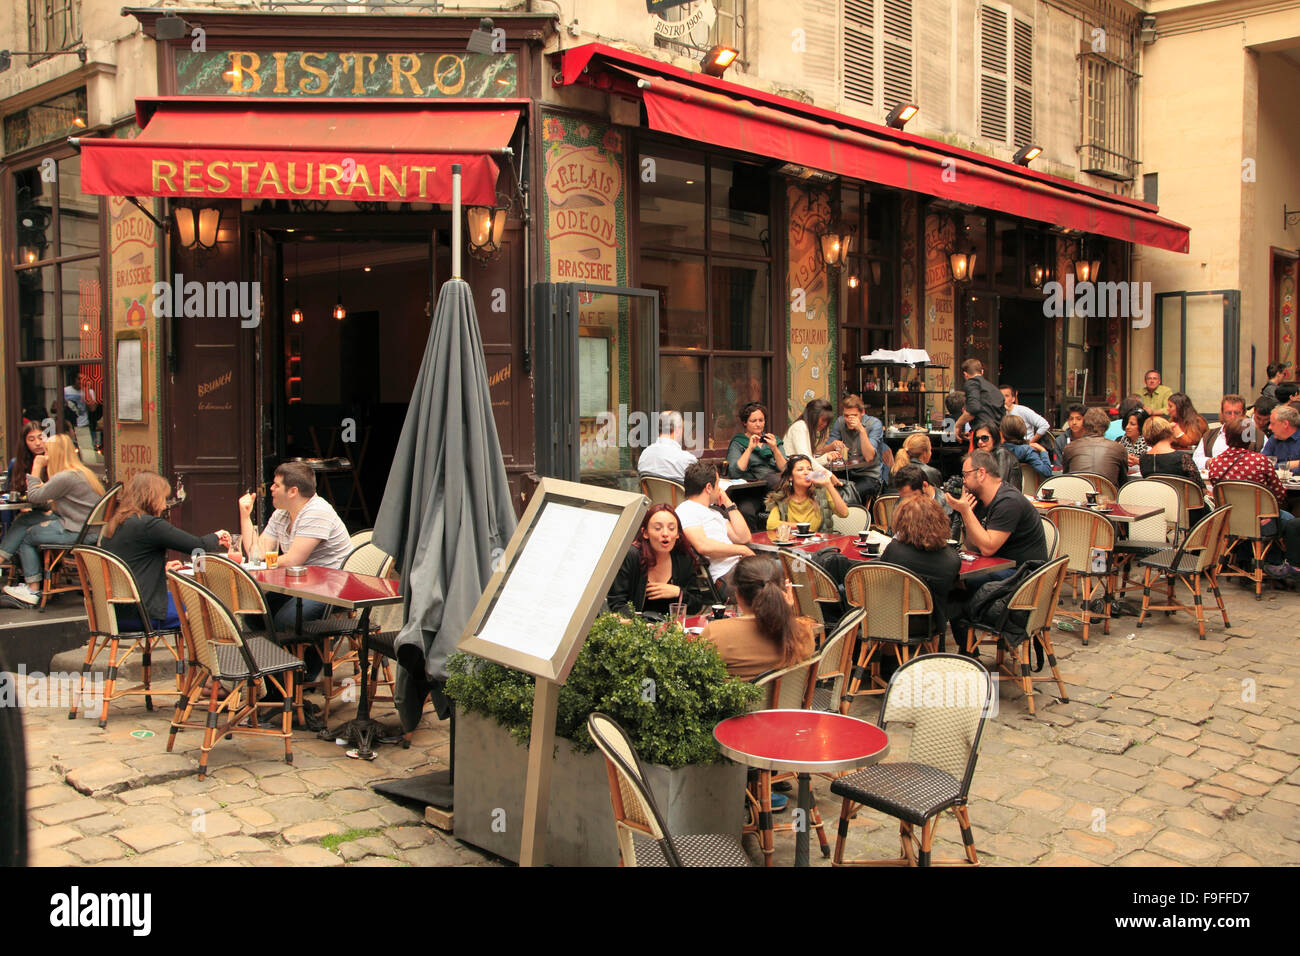 Bistro Paris Stock Photos & Bistro Paris Stock Images